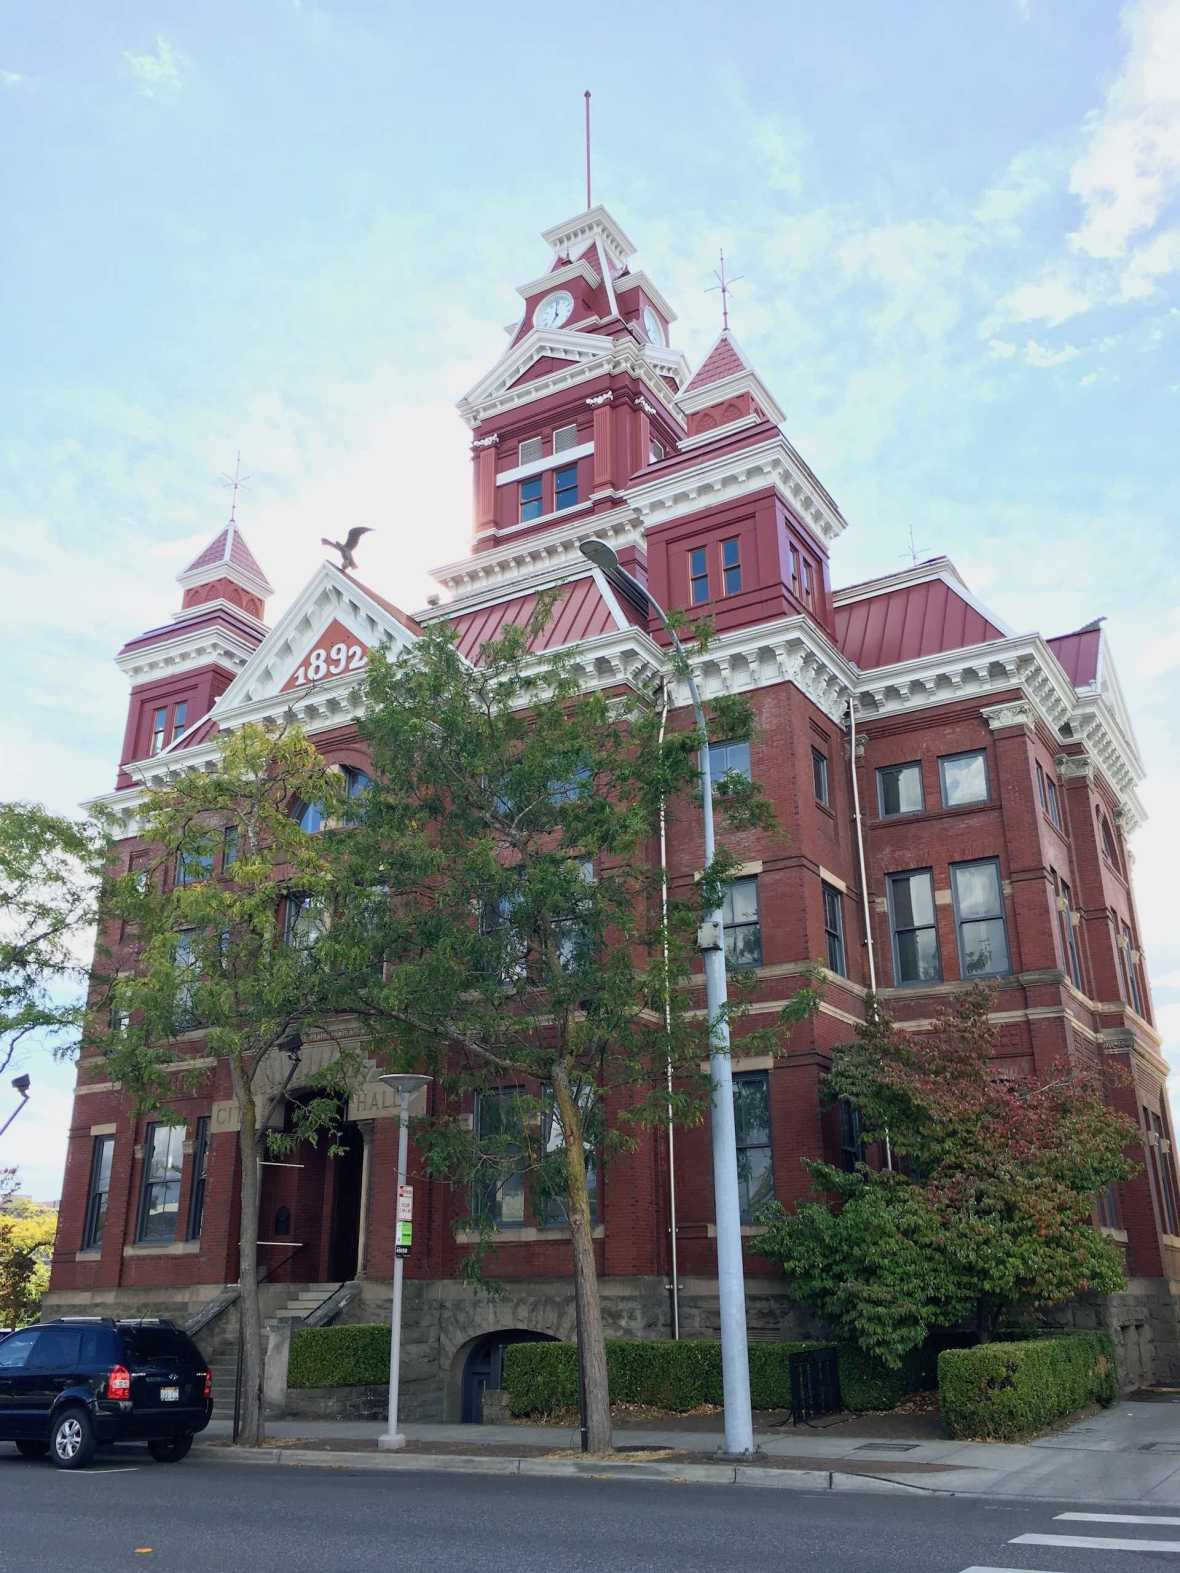 Whatcom Museum - Old City Hall in downtown Bellingham, Washington